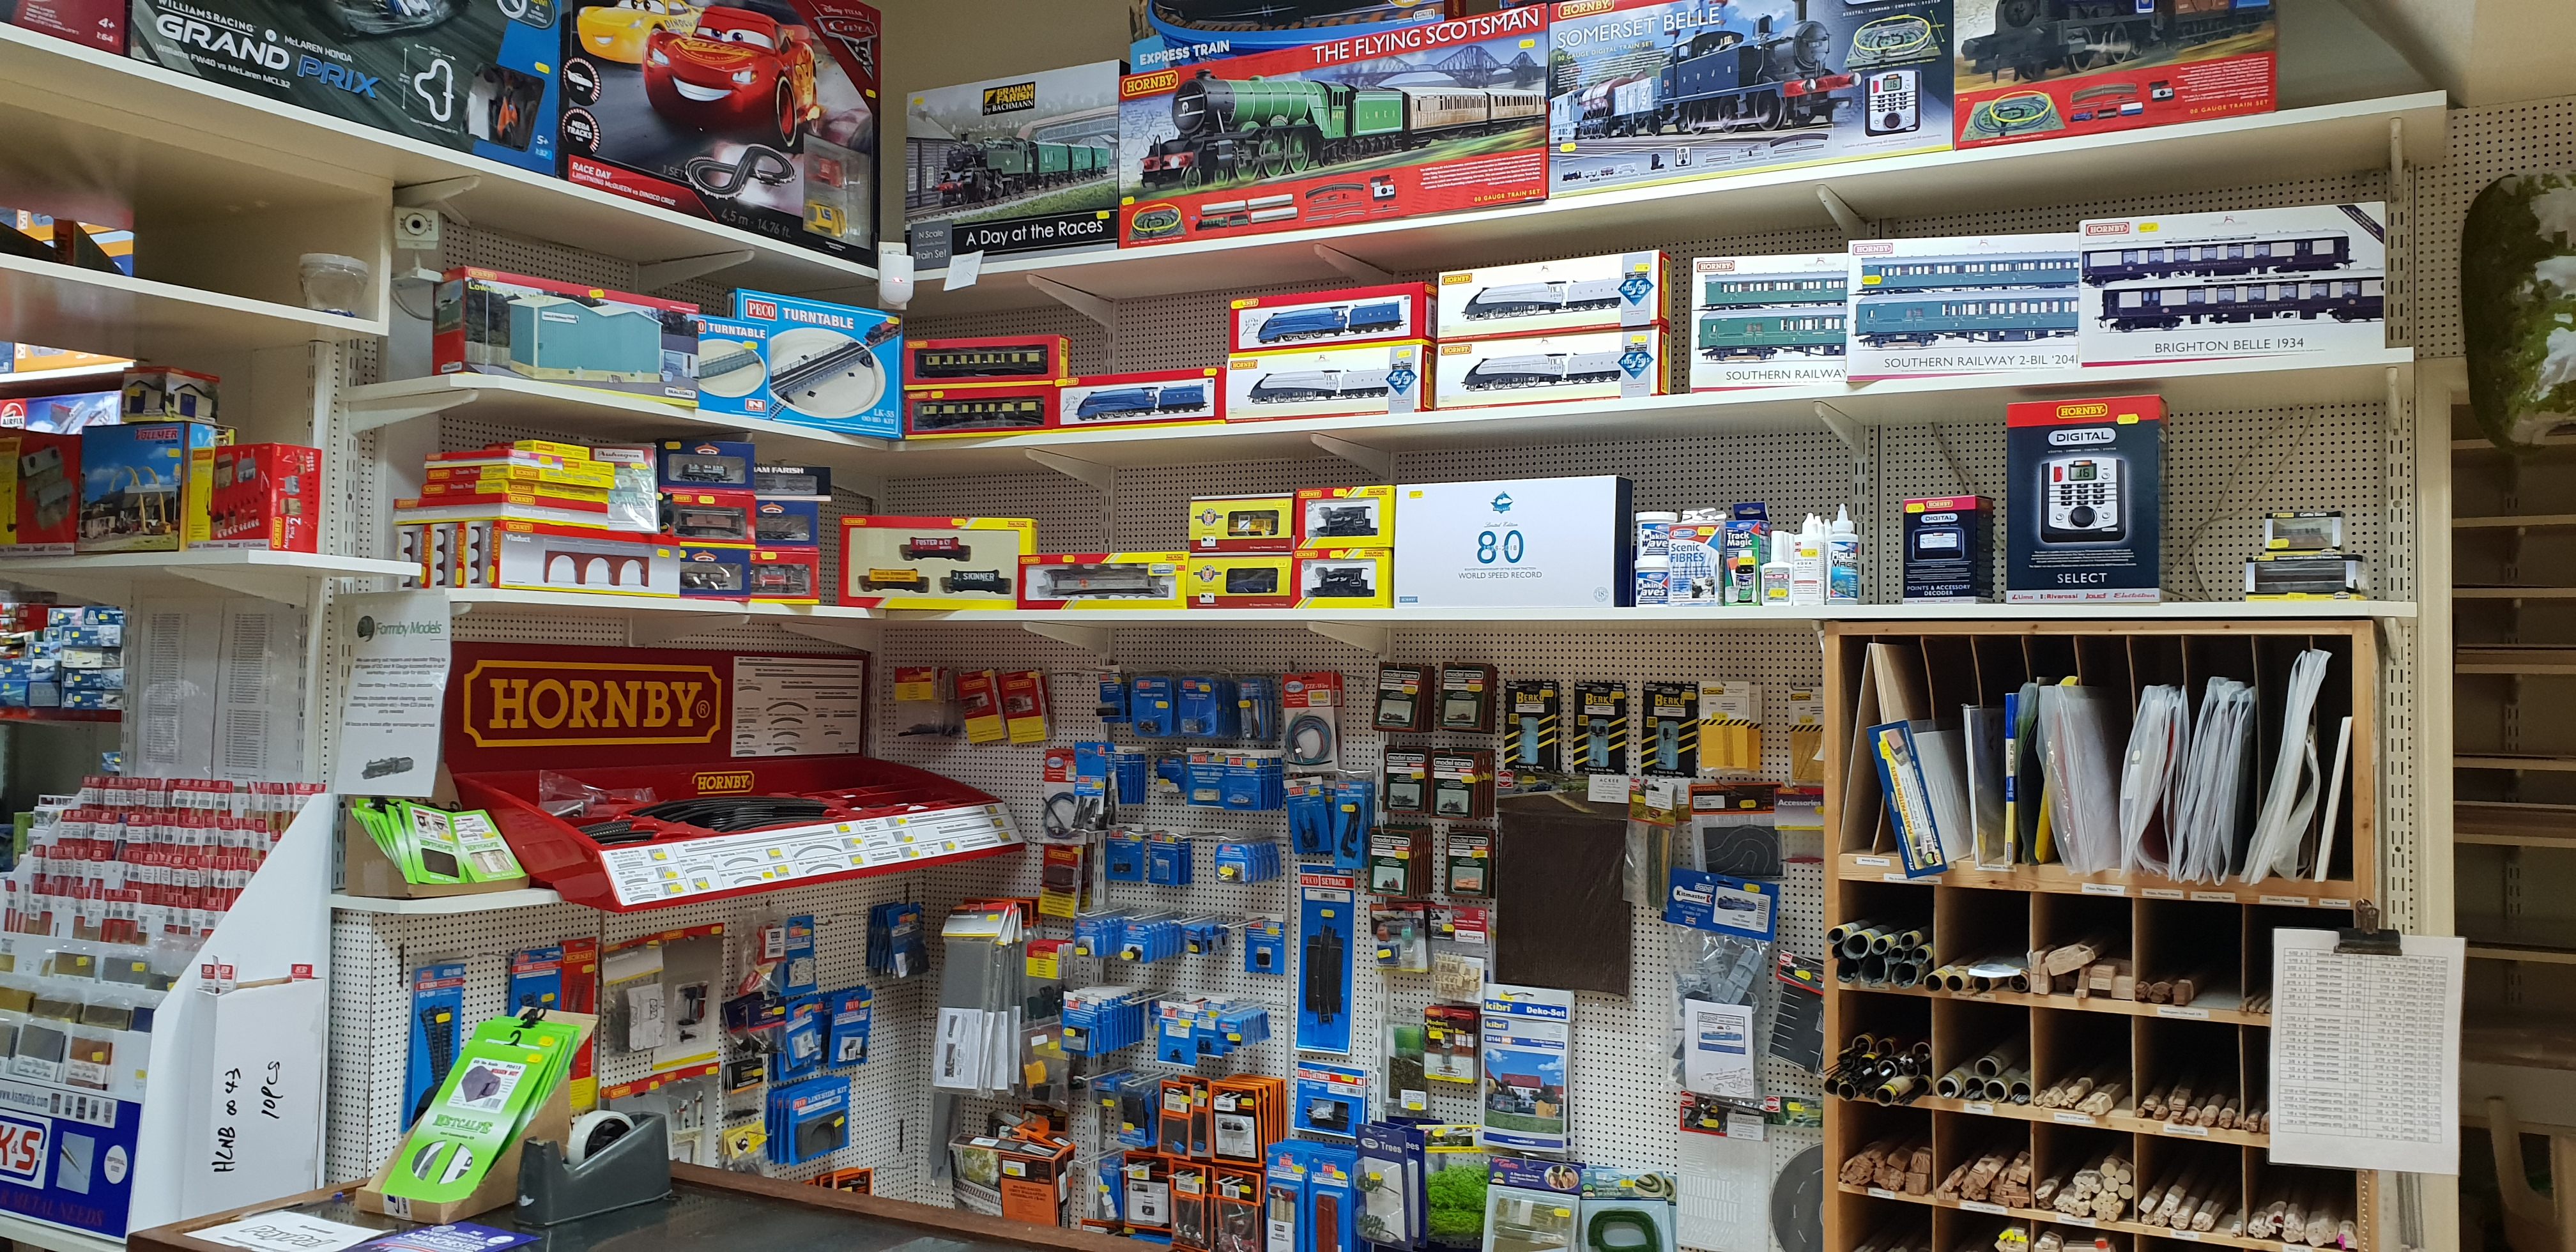 formby models shop interior 1